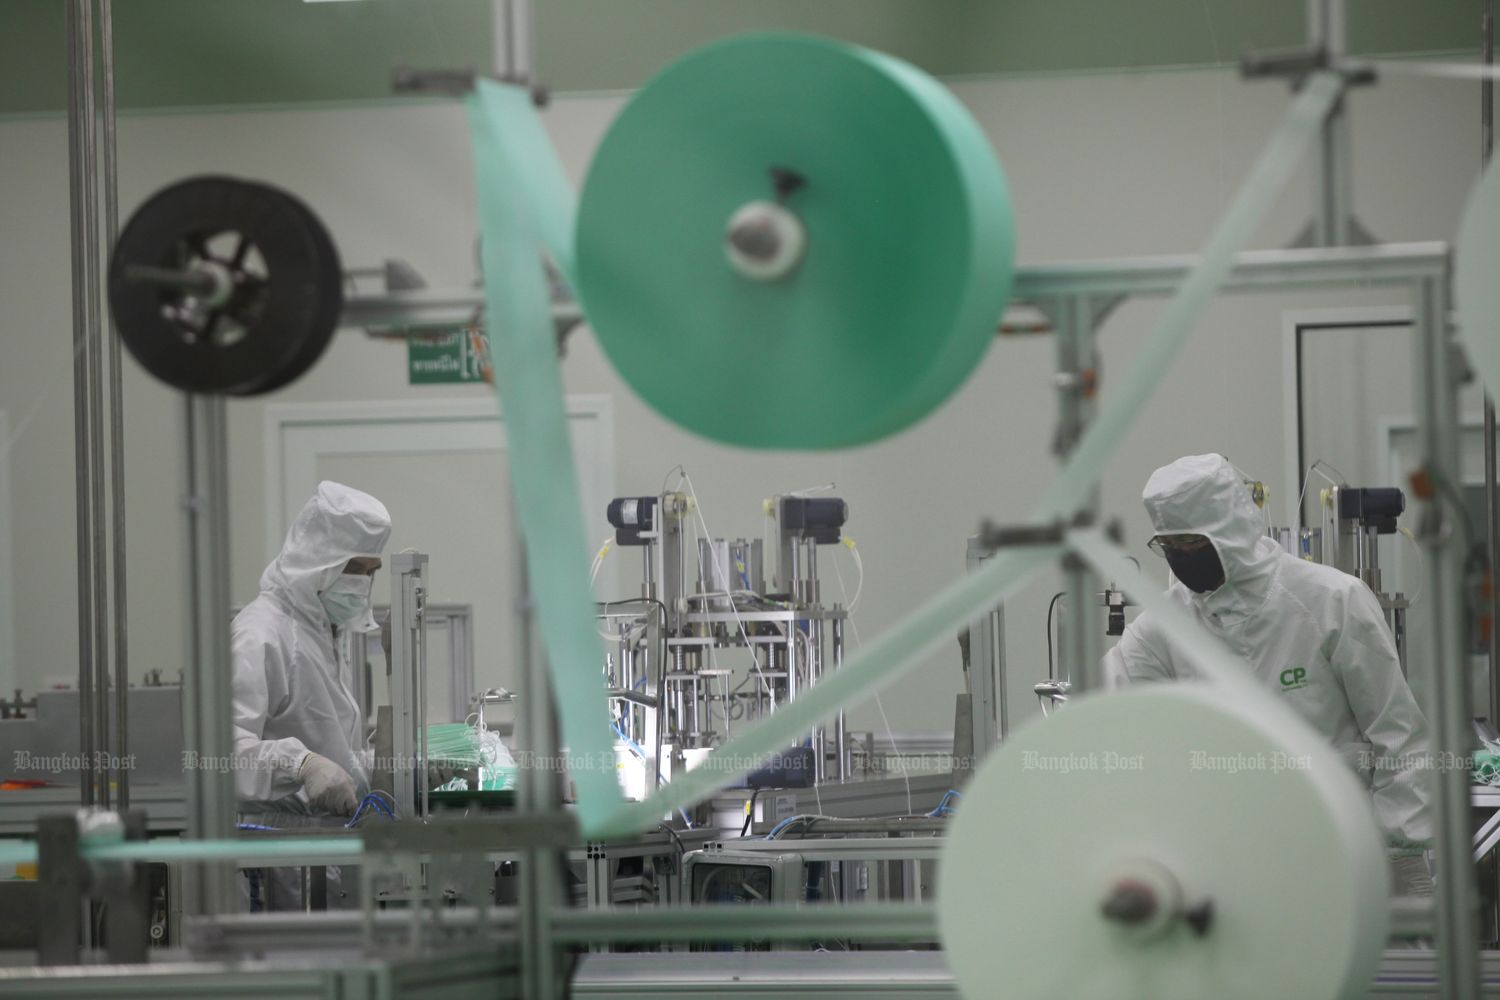 A 100-million-baht surgical mask factory in Samut Prakan built in five weeks by the Charoen Pokphand Group, controlled by billionaire Dhanin Chearavanont, was up and running on Thursday. It has a capacity of 3 million pieces a month. The output is free and will be shipped to and distributed only by hospitals to medical workers and people with no access to them. (Photo by Arnun Chonmahatrakool)